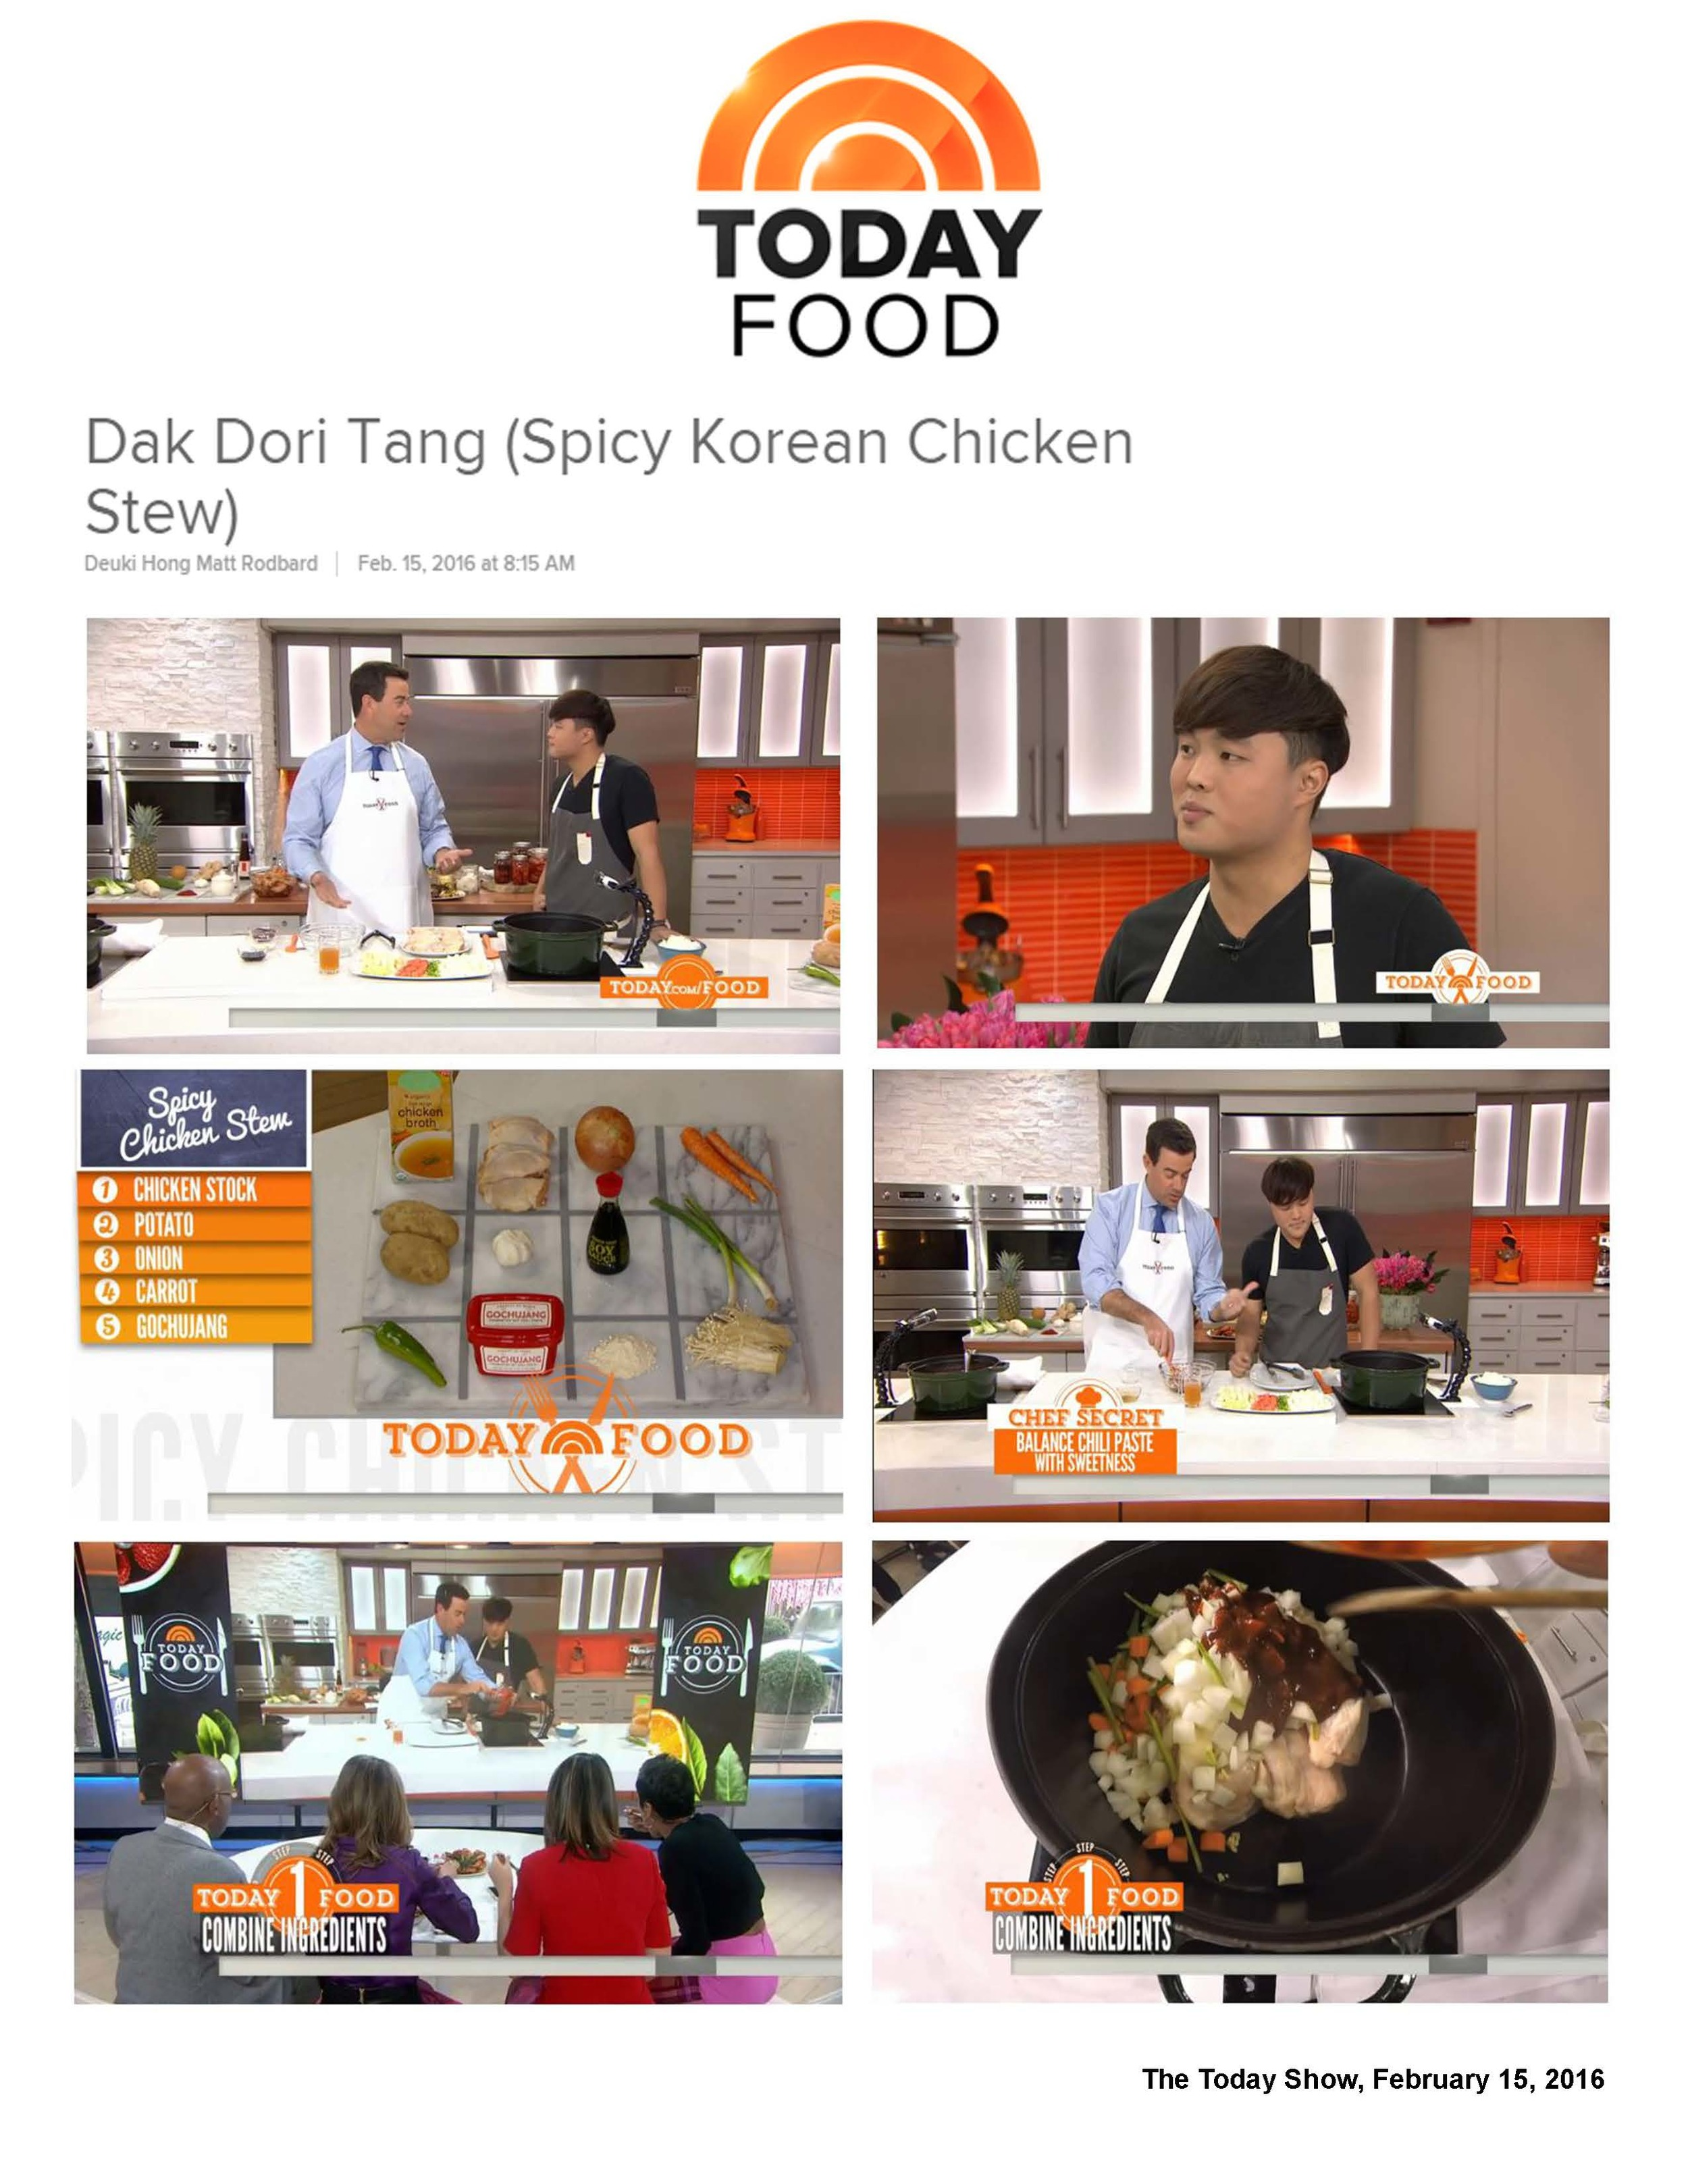 WEBSITE_Today Show_Koreatown_TV Clippings_Feb 15 2016_page 1.jpg